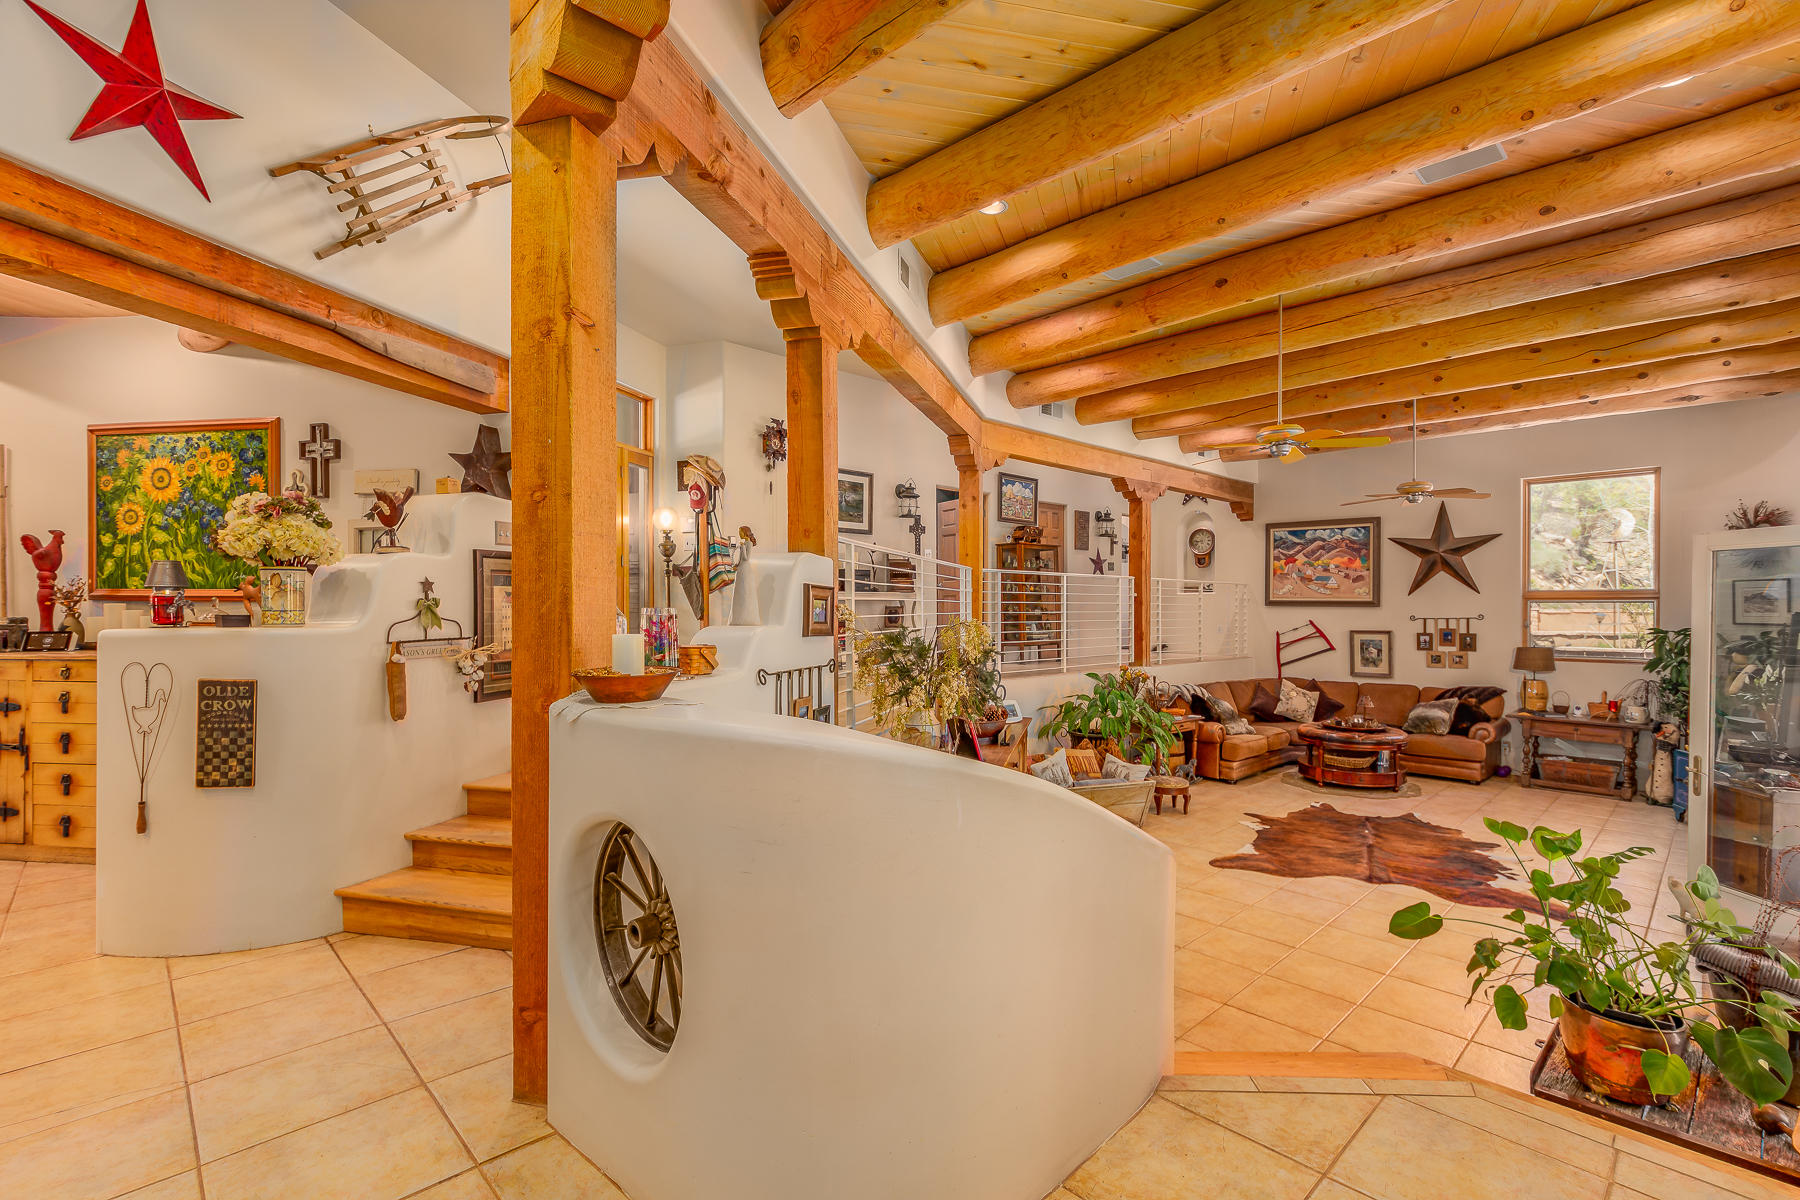 Custom Nichos and Open Living Space